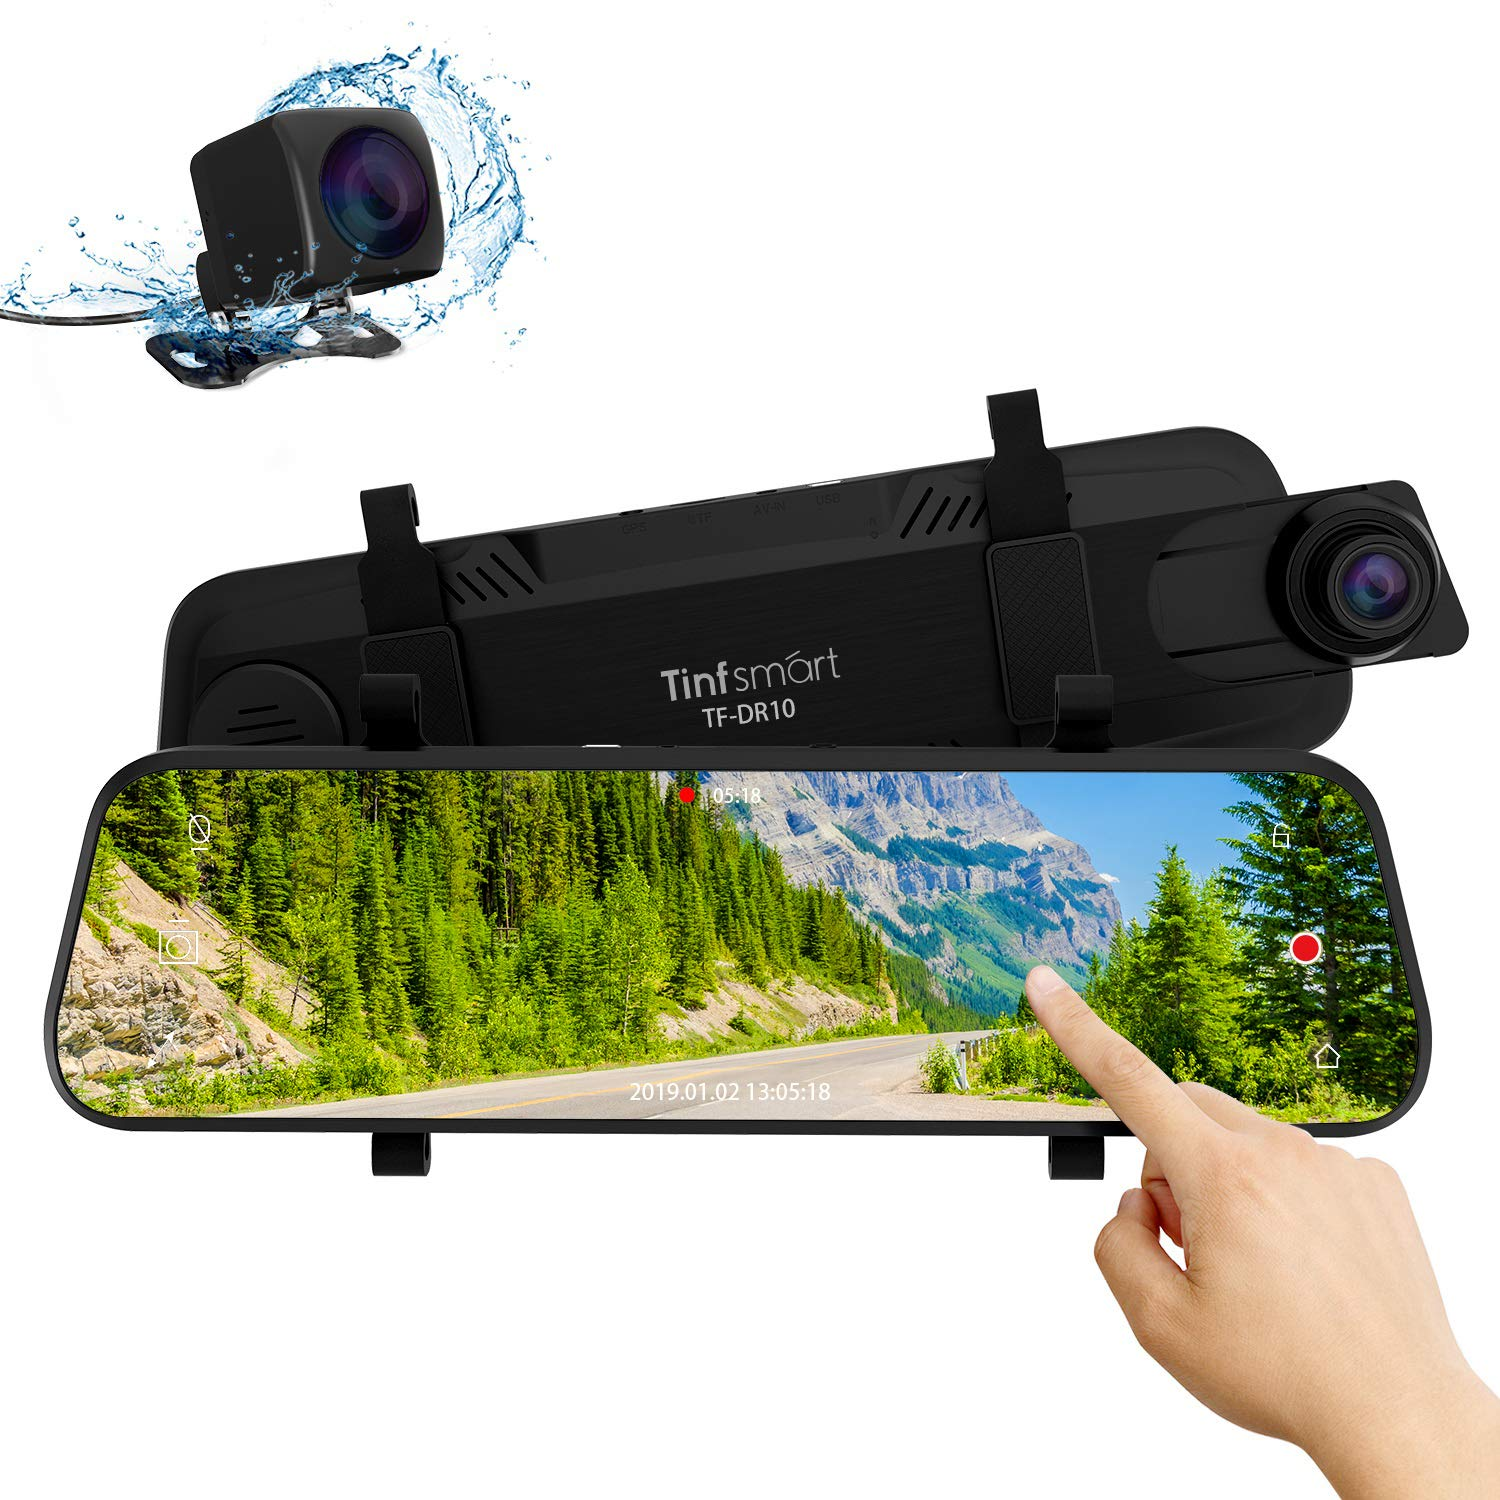 "B07PB8QJX3 Mirror Dual Dash Cam【Updated Version】 - Tinfsmart 10"" Full HD Touch Screen Backup Dash Camera for Car Dual Len 170° 1080P Front & 150° 1080P Rear View Night Version Loop Recording Parking Monitor 81zMIgCp3xL._SL1500_"